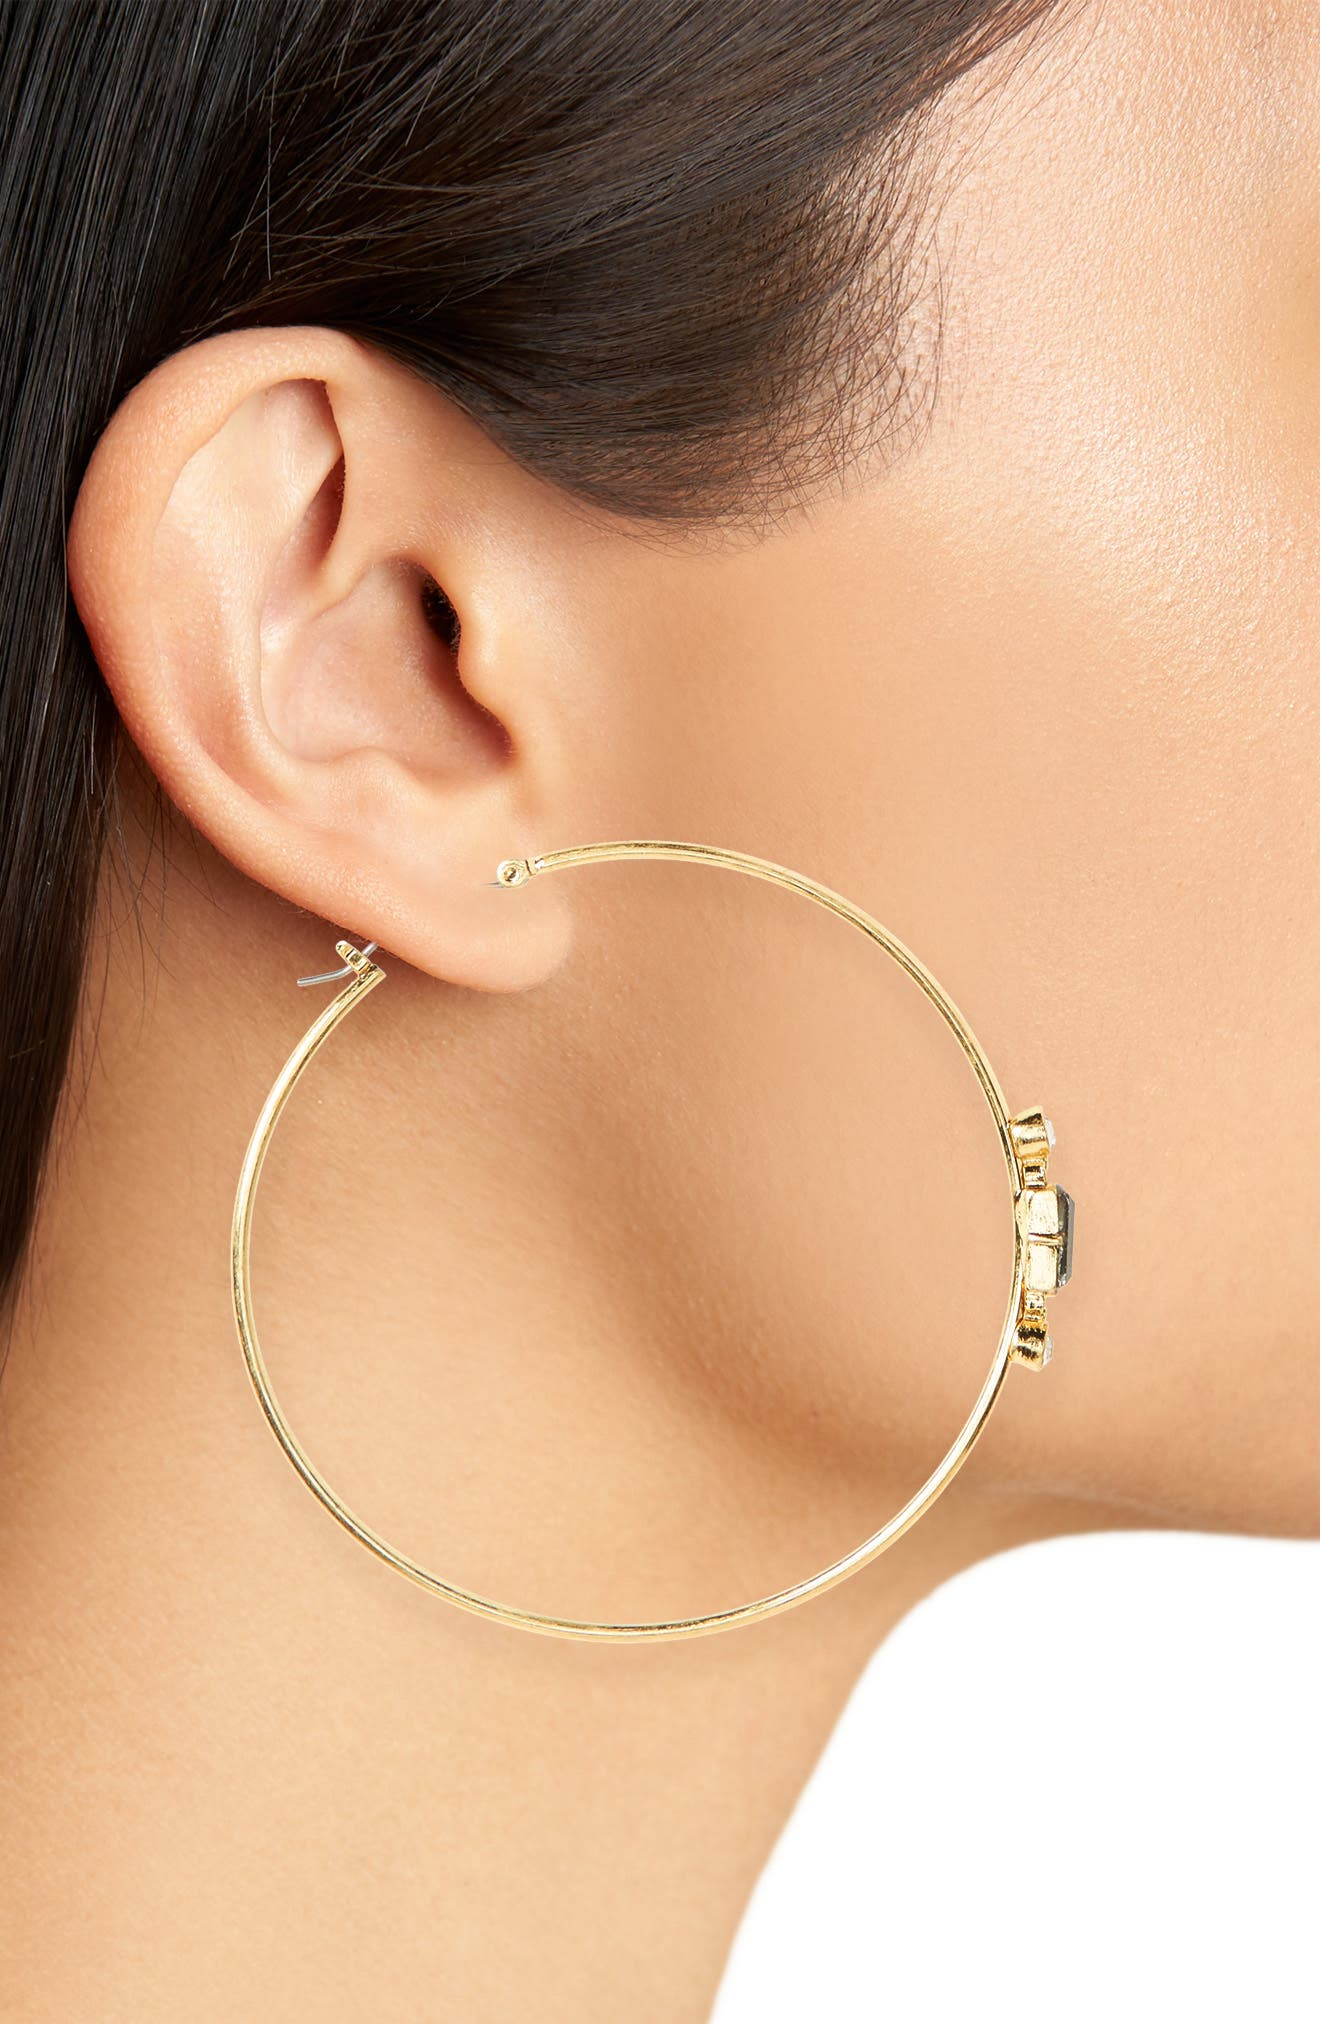 Crystal Hoop Earrings,                             Alternate thumbnail 2, color,                             710